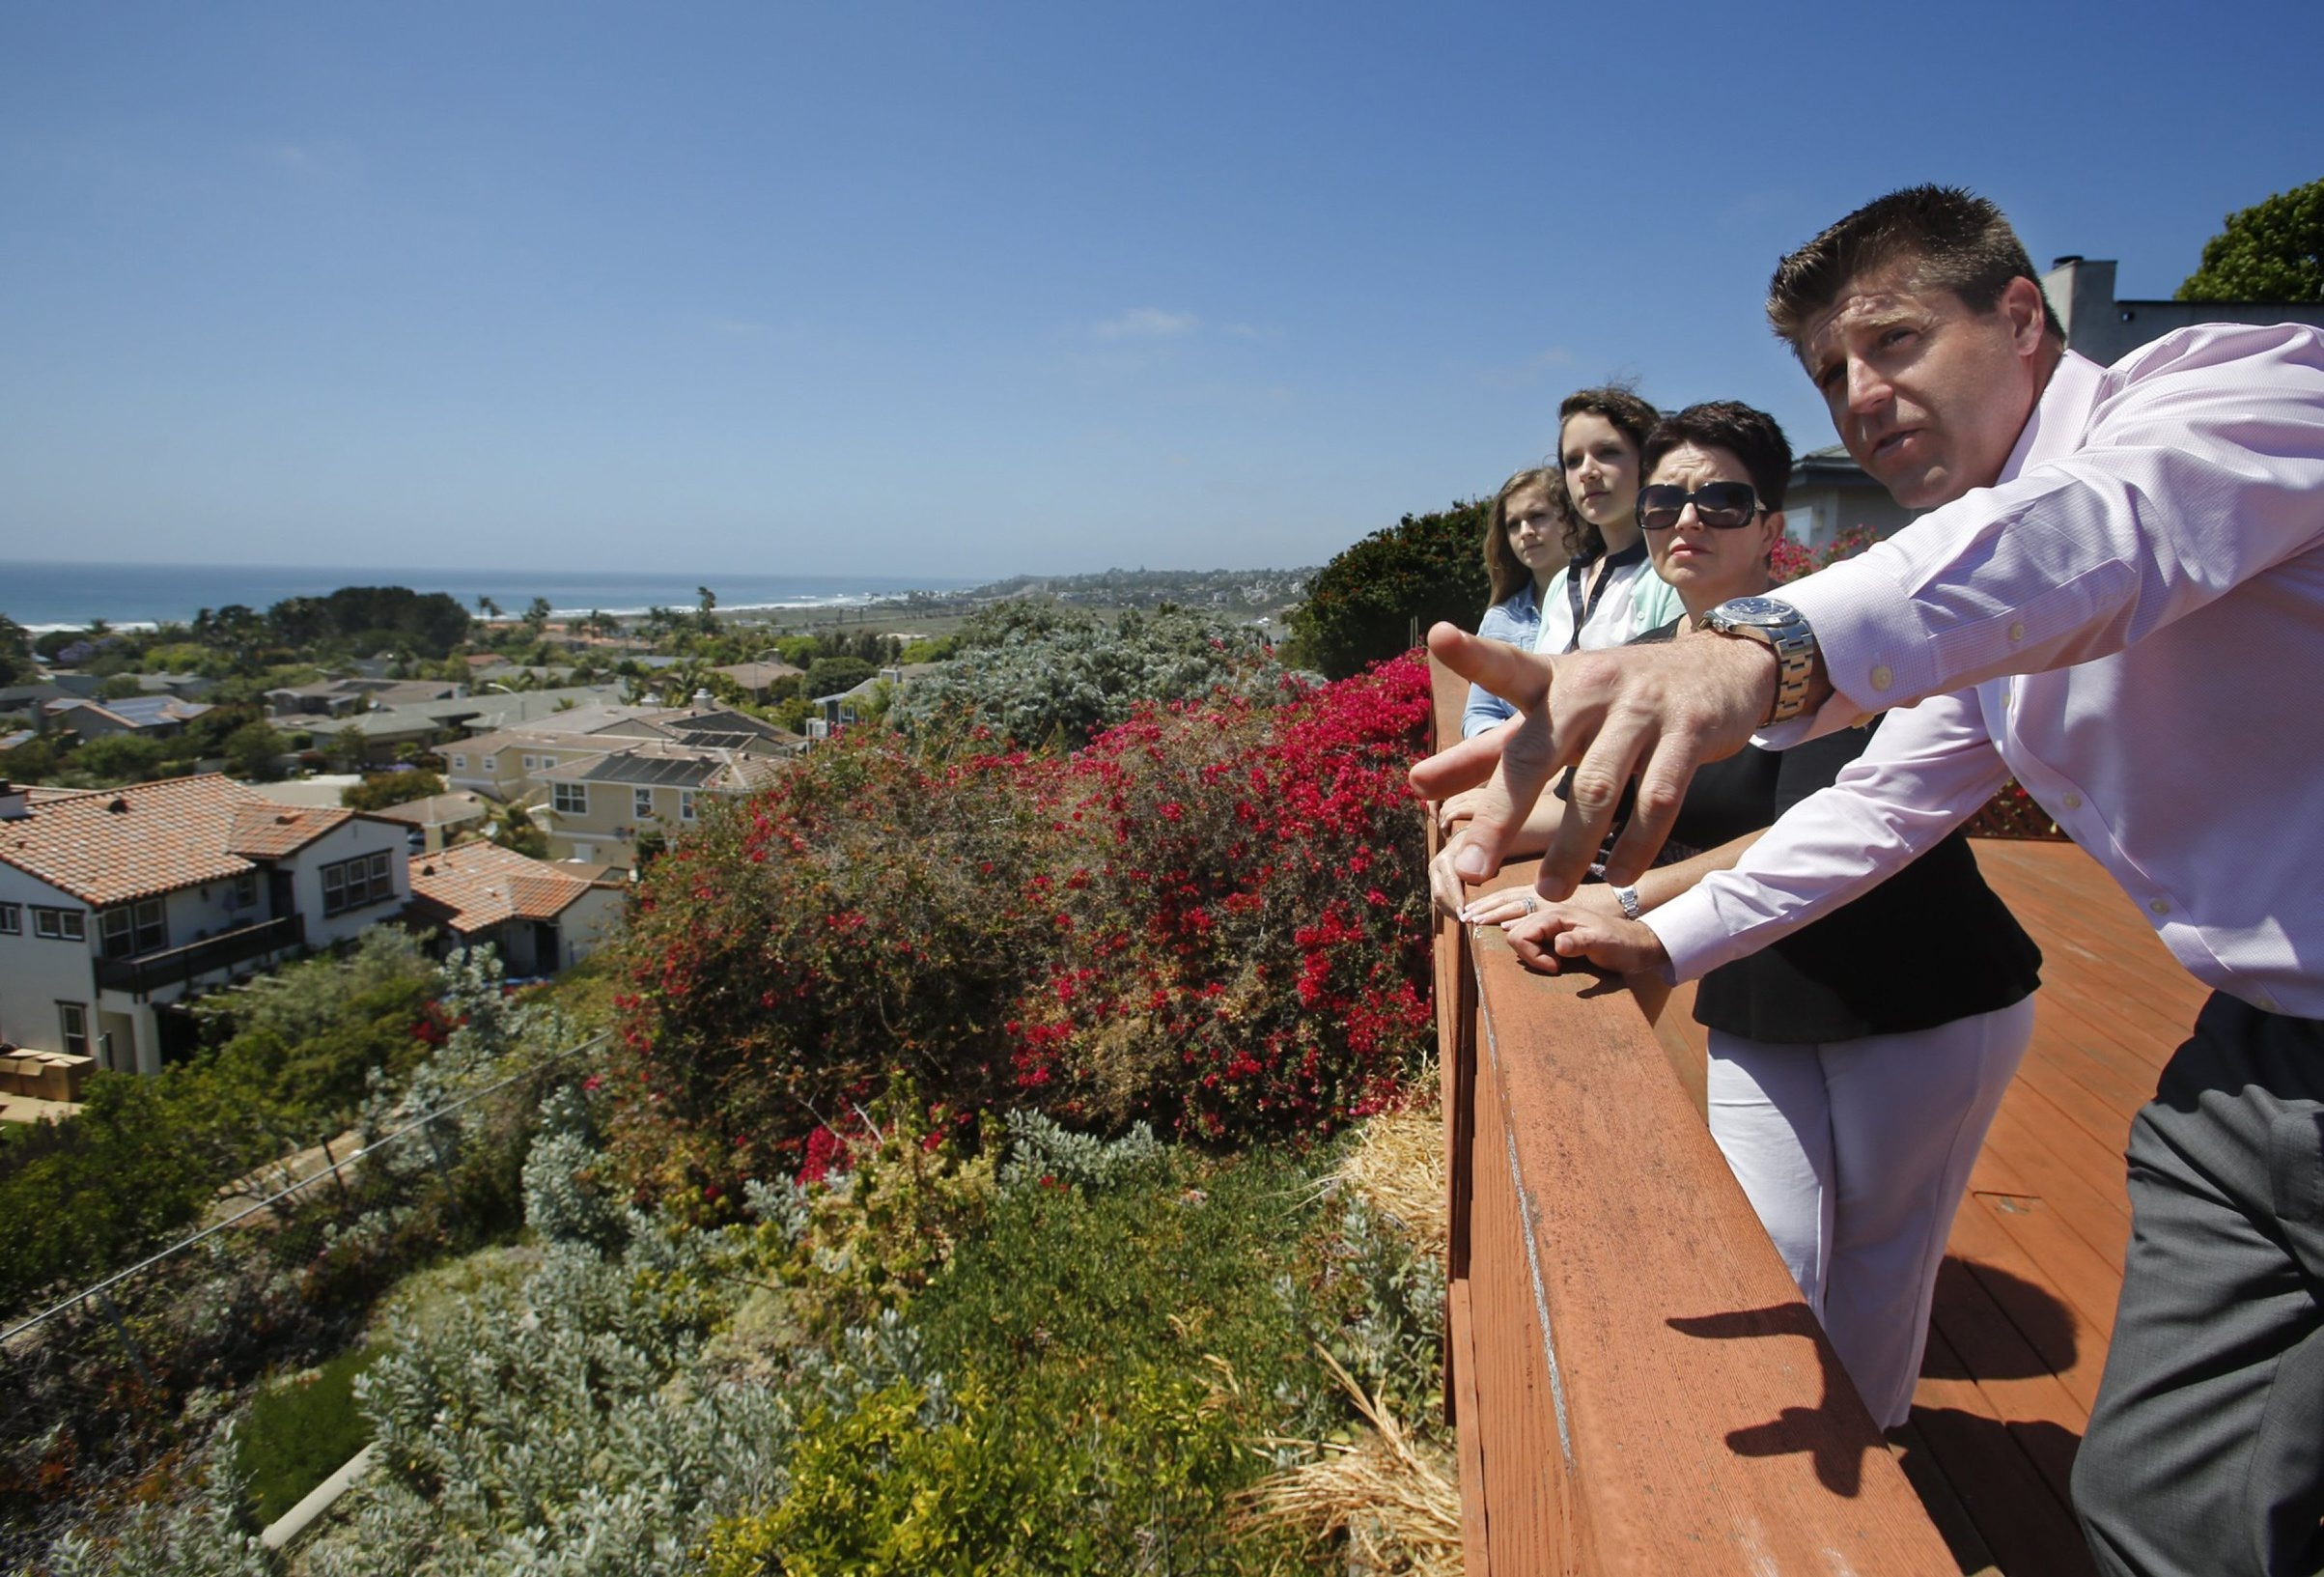 Realtor Ryan Mathys shows features to the Snyder family as they tour a home in Solana Beach, Calif. The family wanted a home on the beach but couldn't find one. Mathys searched social media and mailed homeowners until he found the property for sale before it hit any listing services.